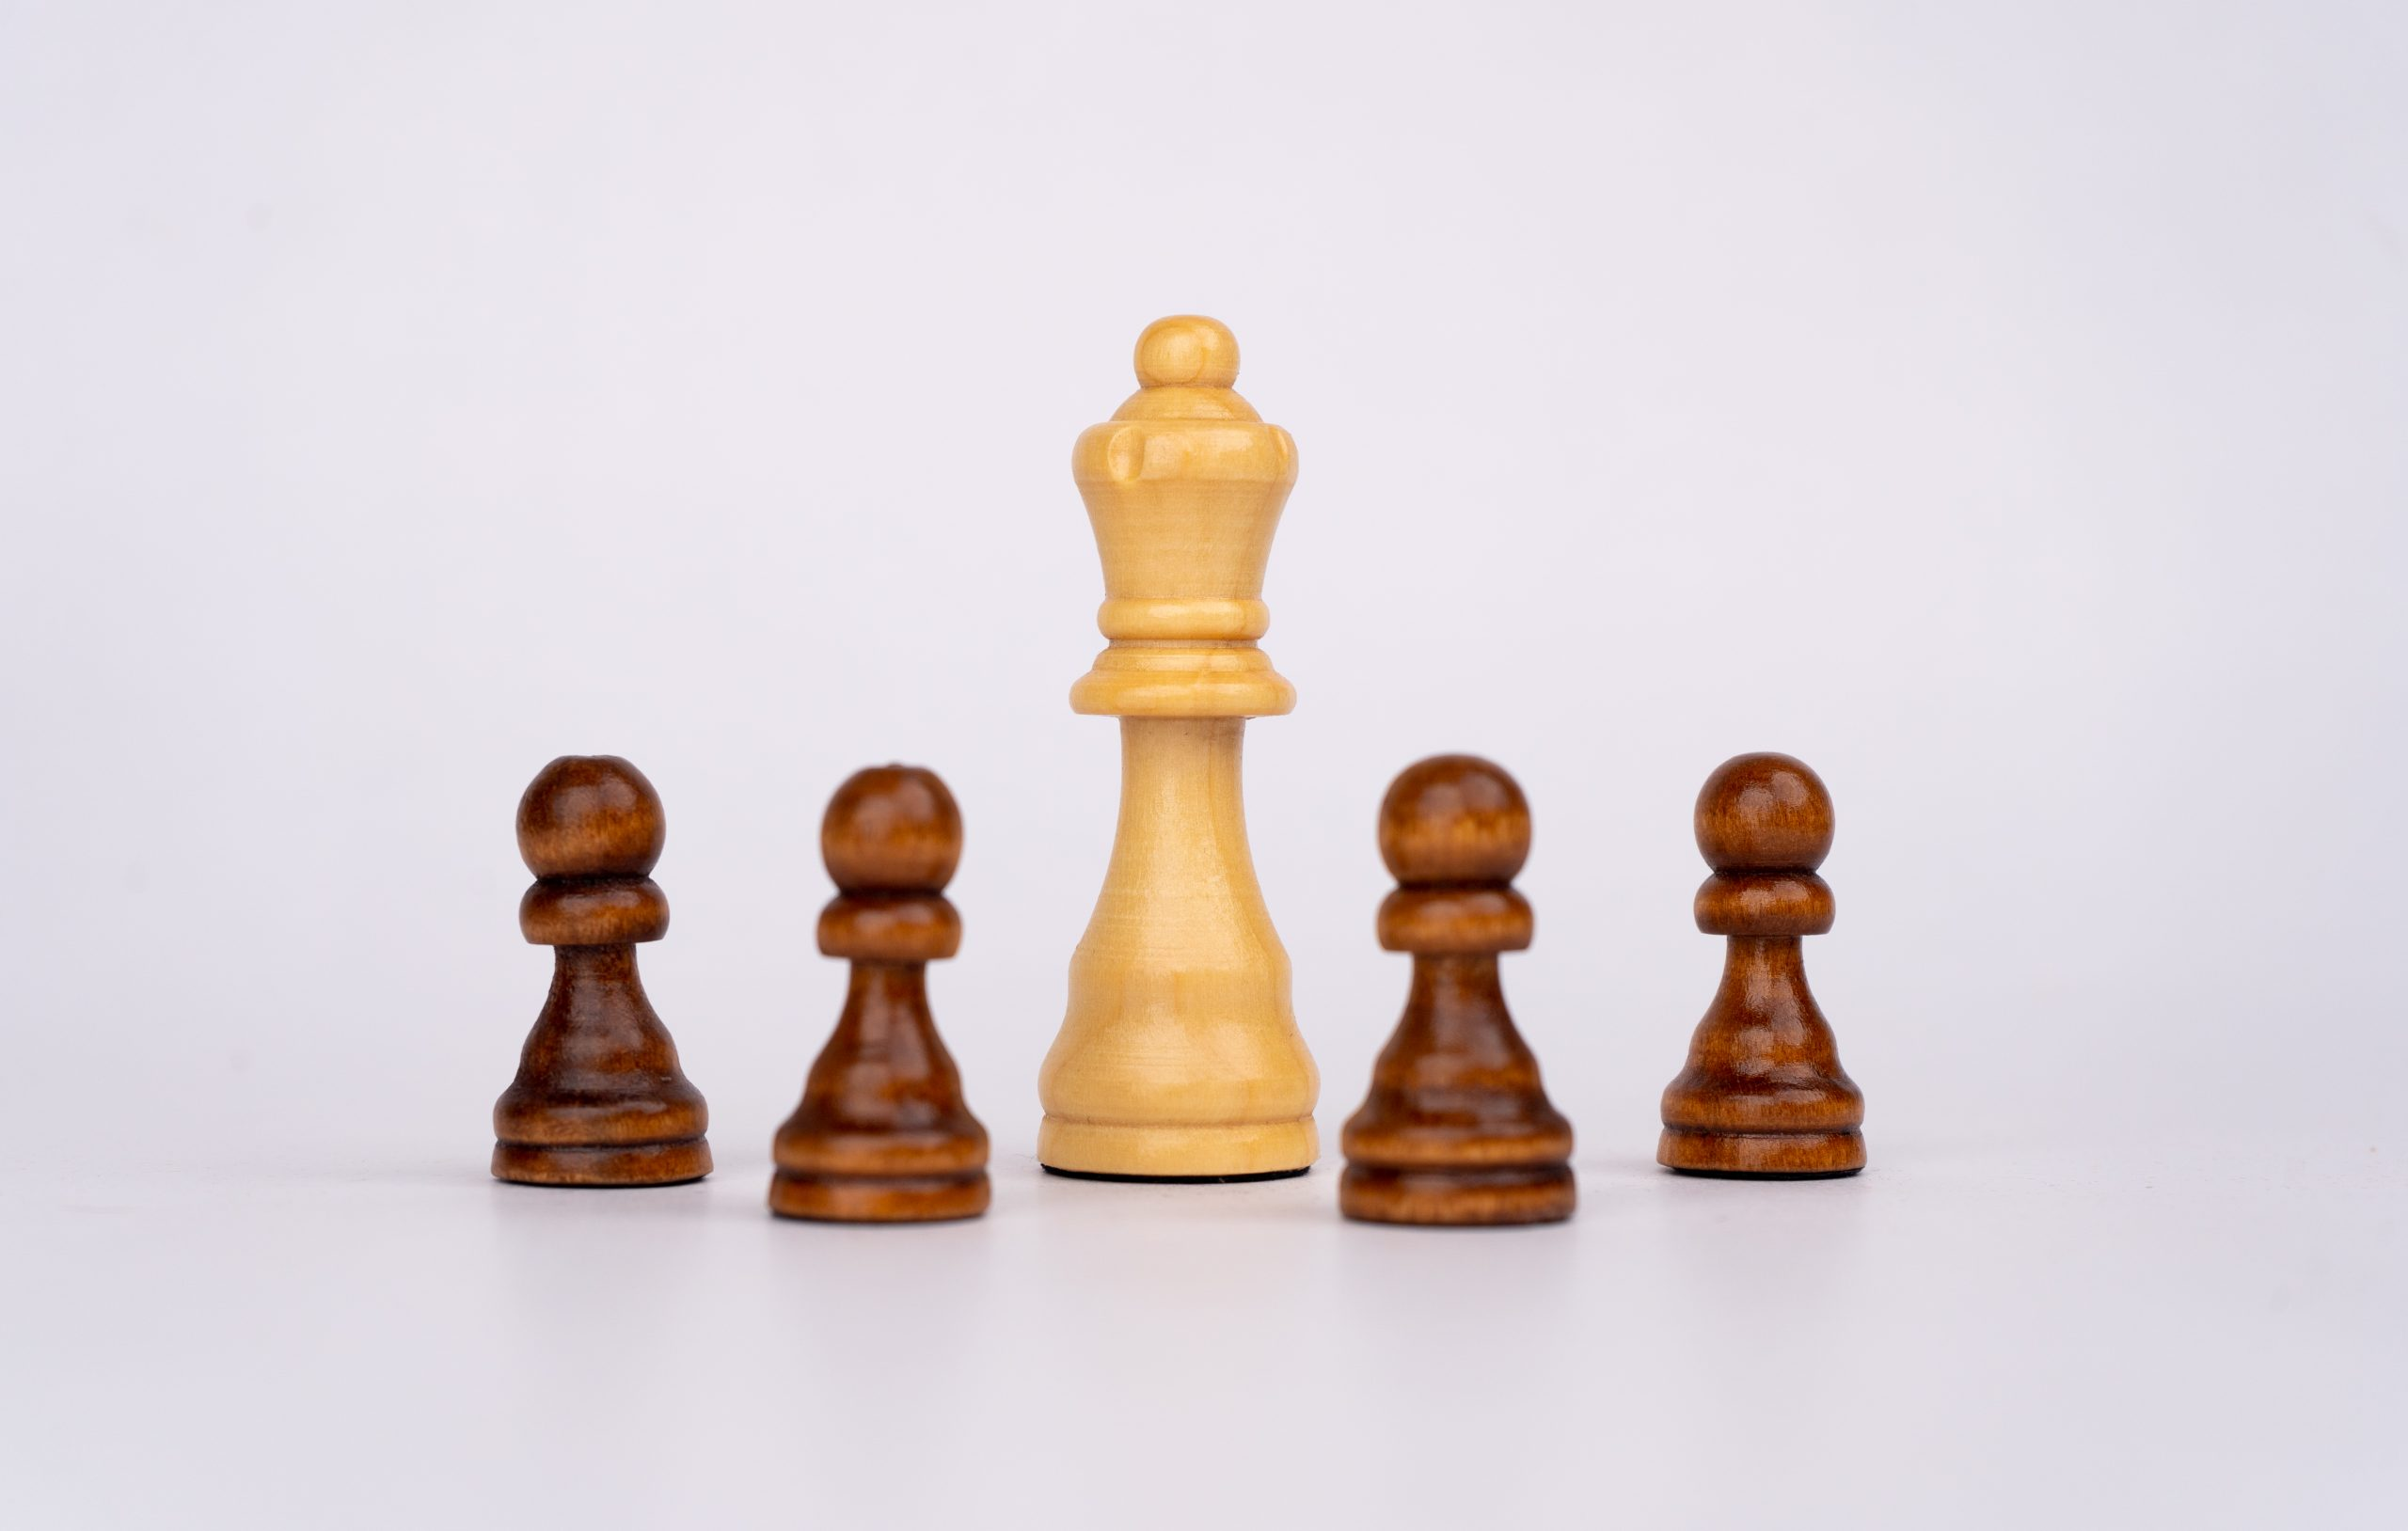 White queen and black pawns